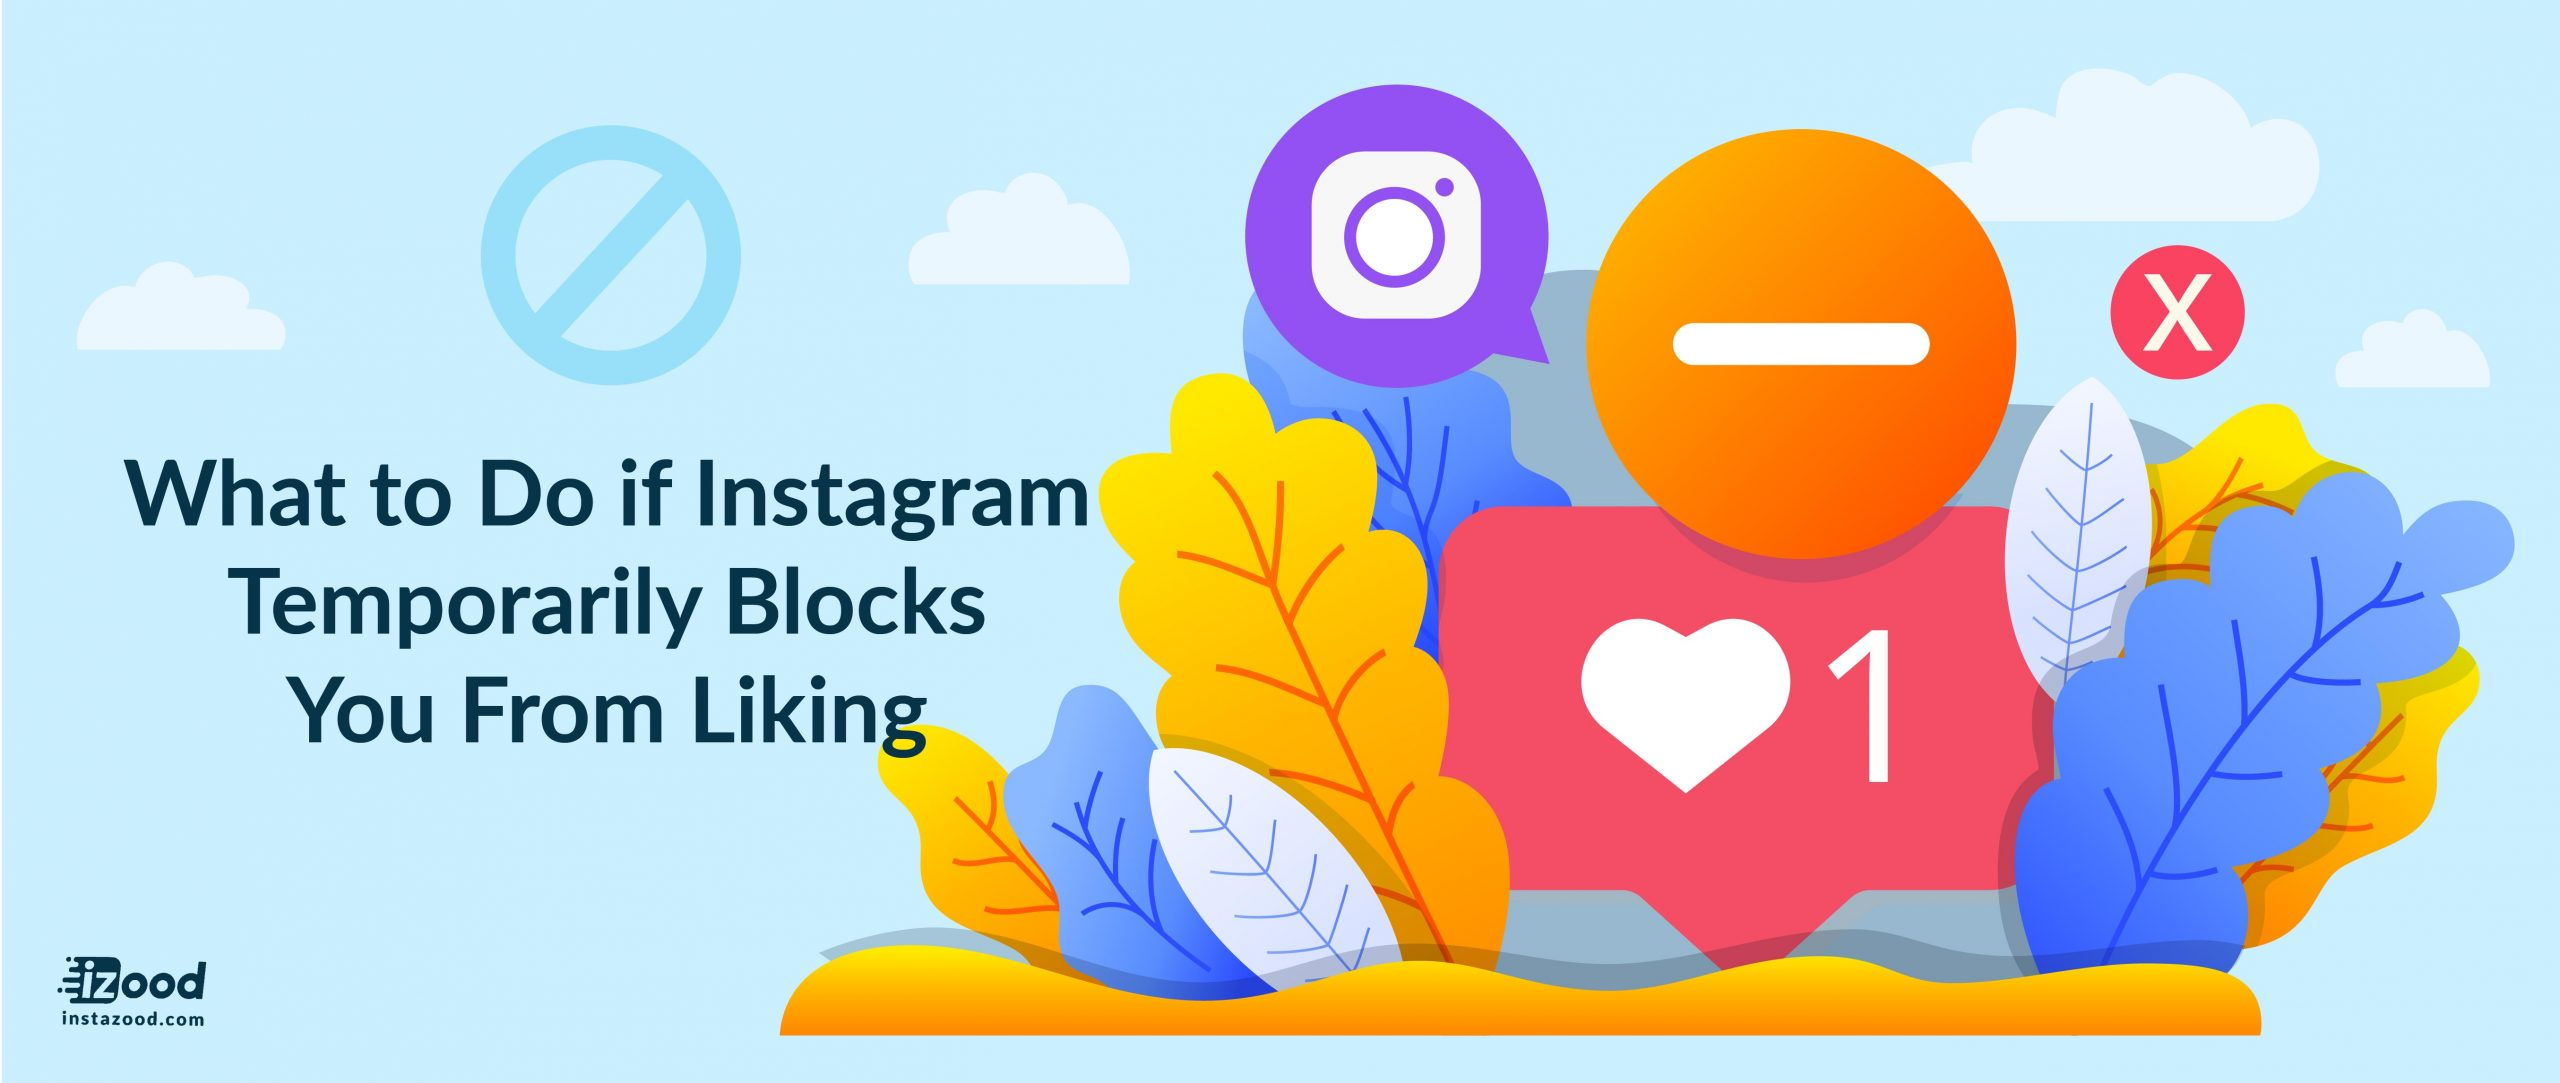 What to Do if Instagram Temporarily Blocks You From Liking